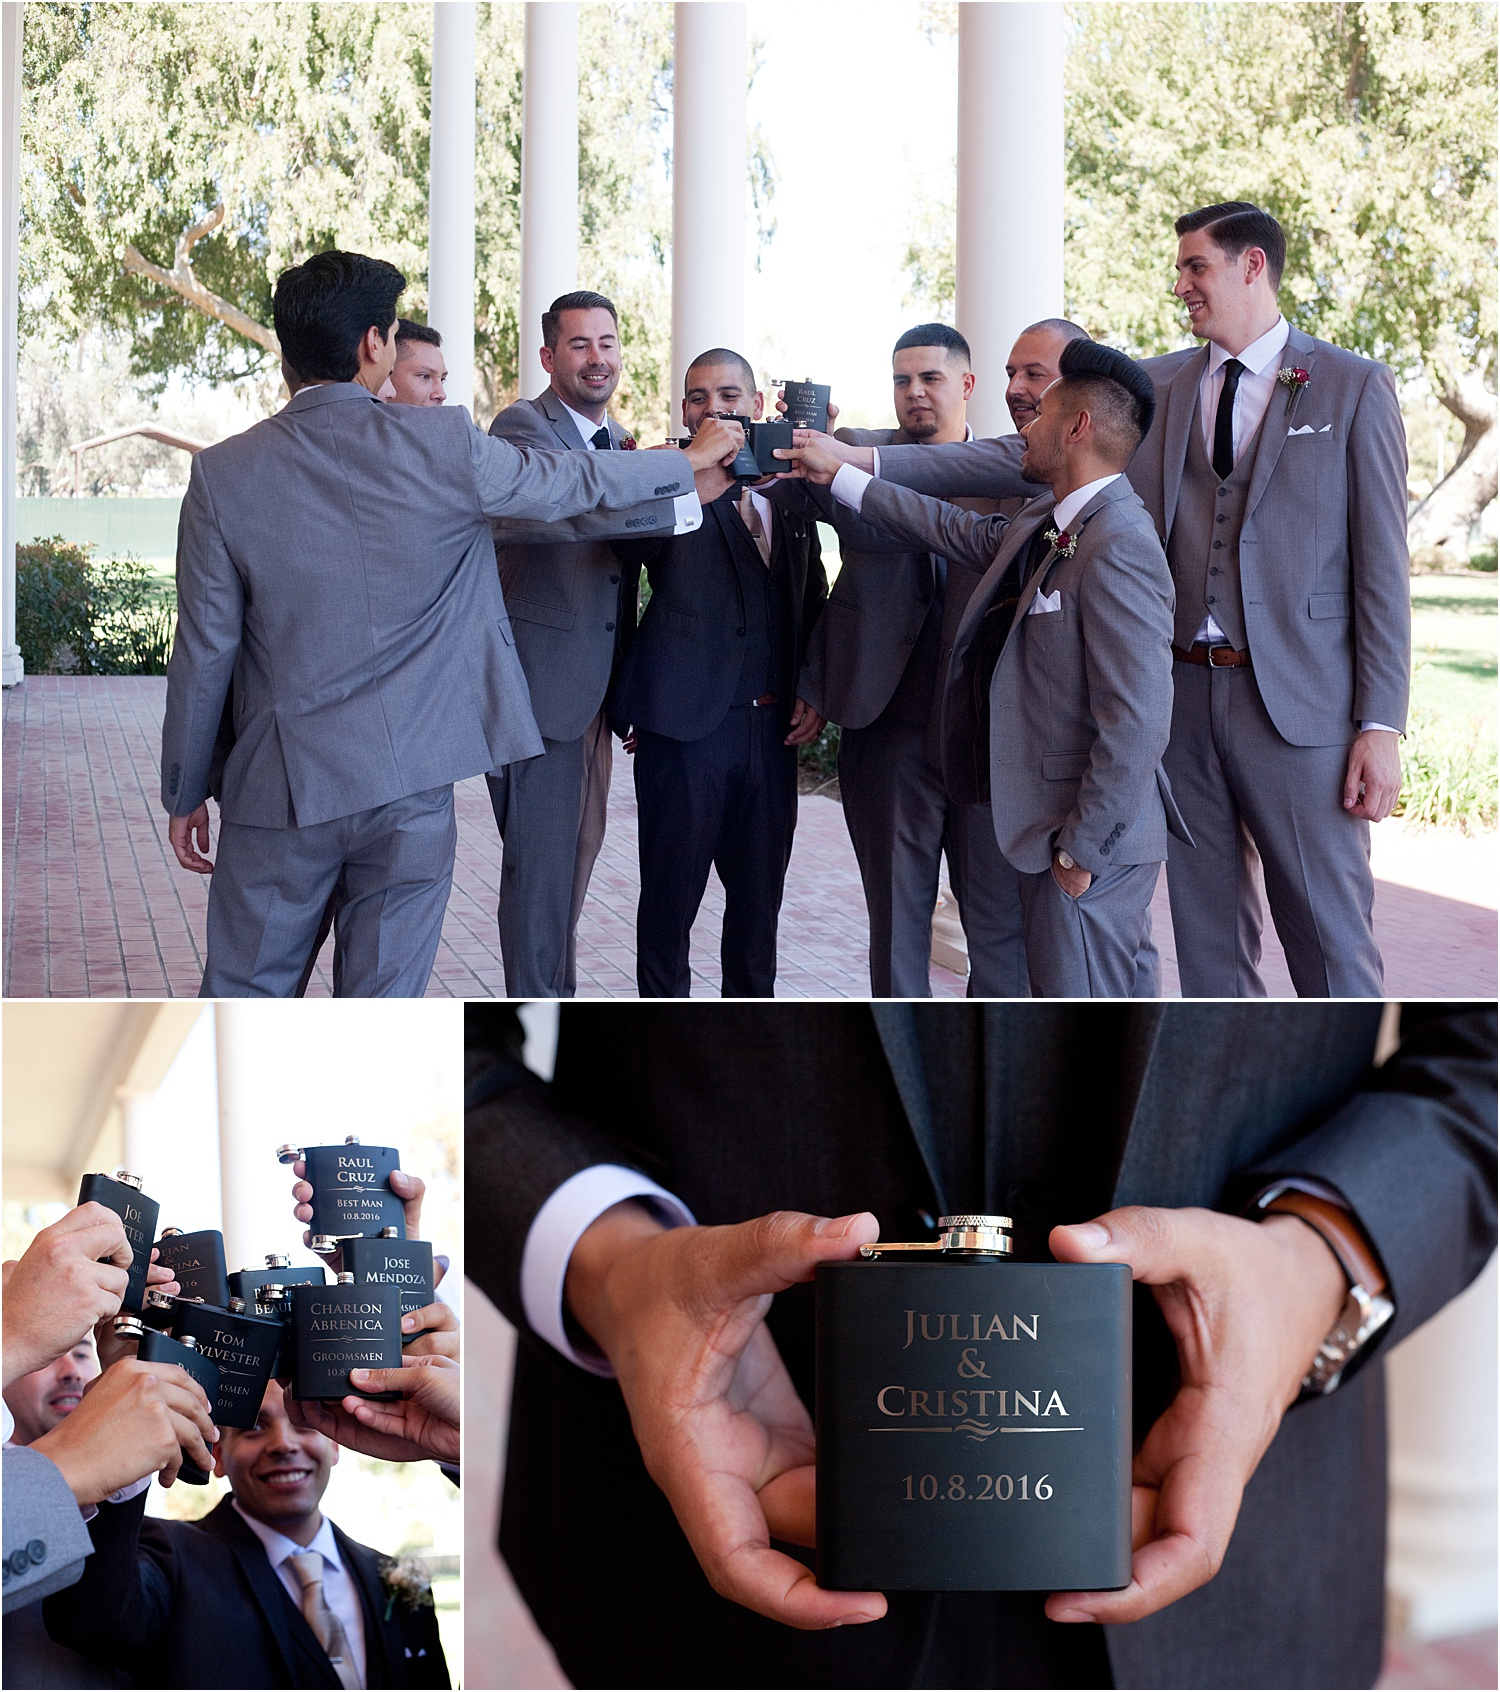 How to Pose Grooms and Groomsmen Effectively